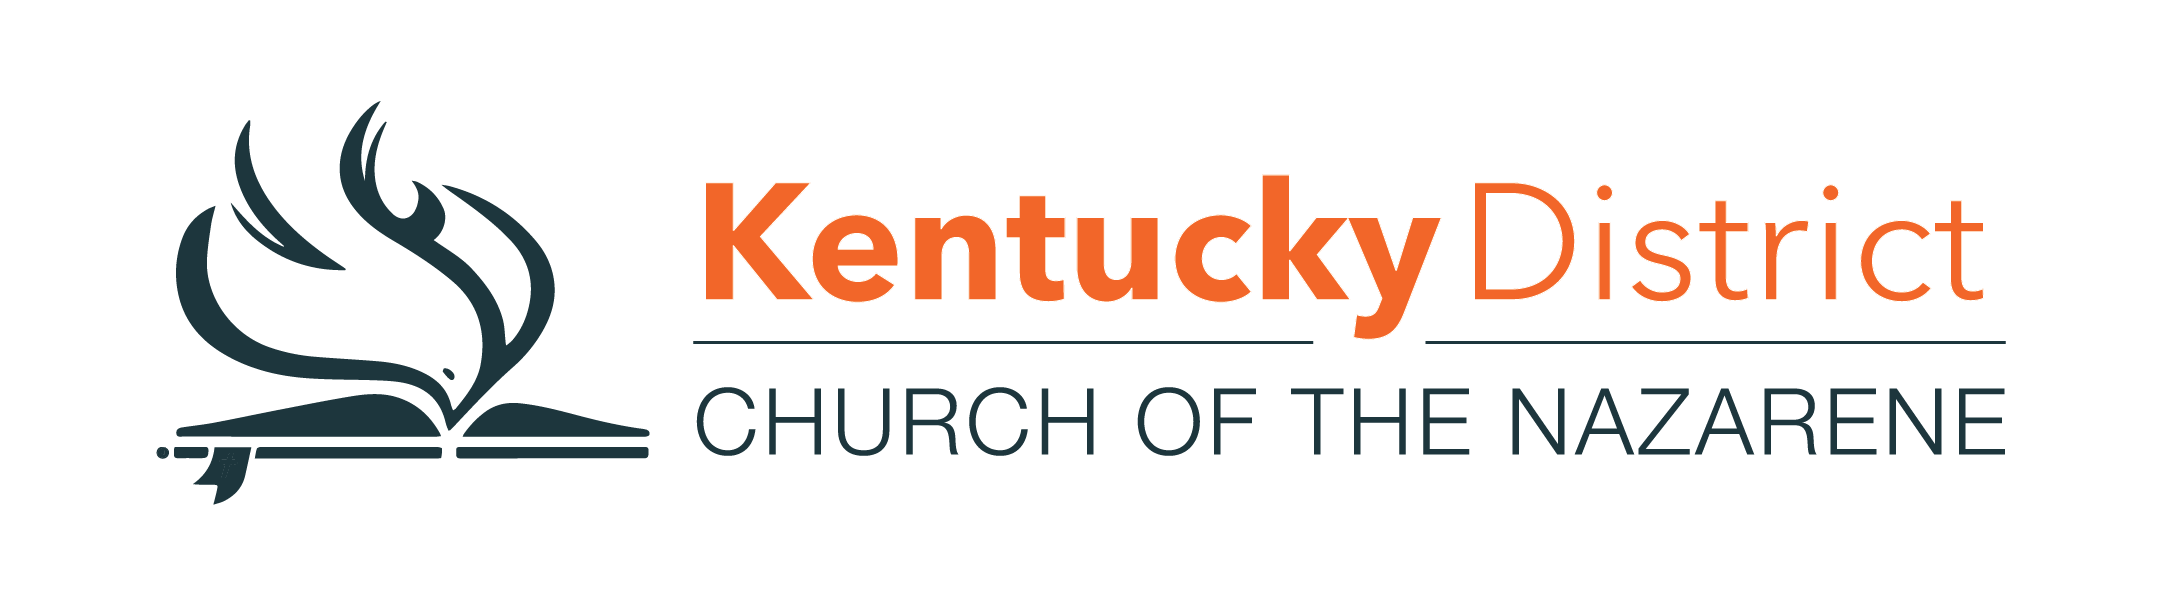 Kentucky District Church of the Nazarene